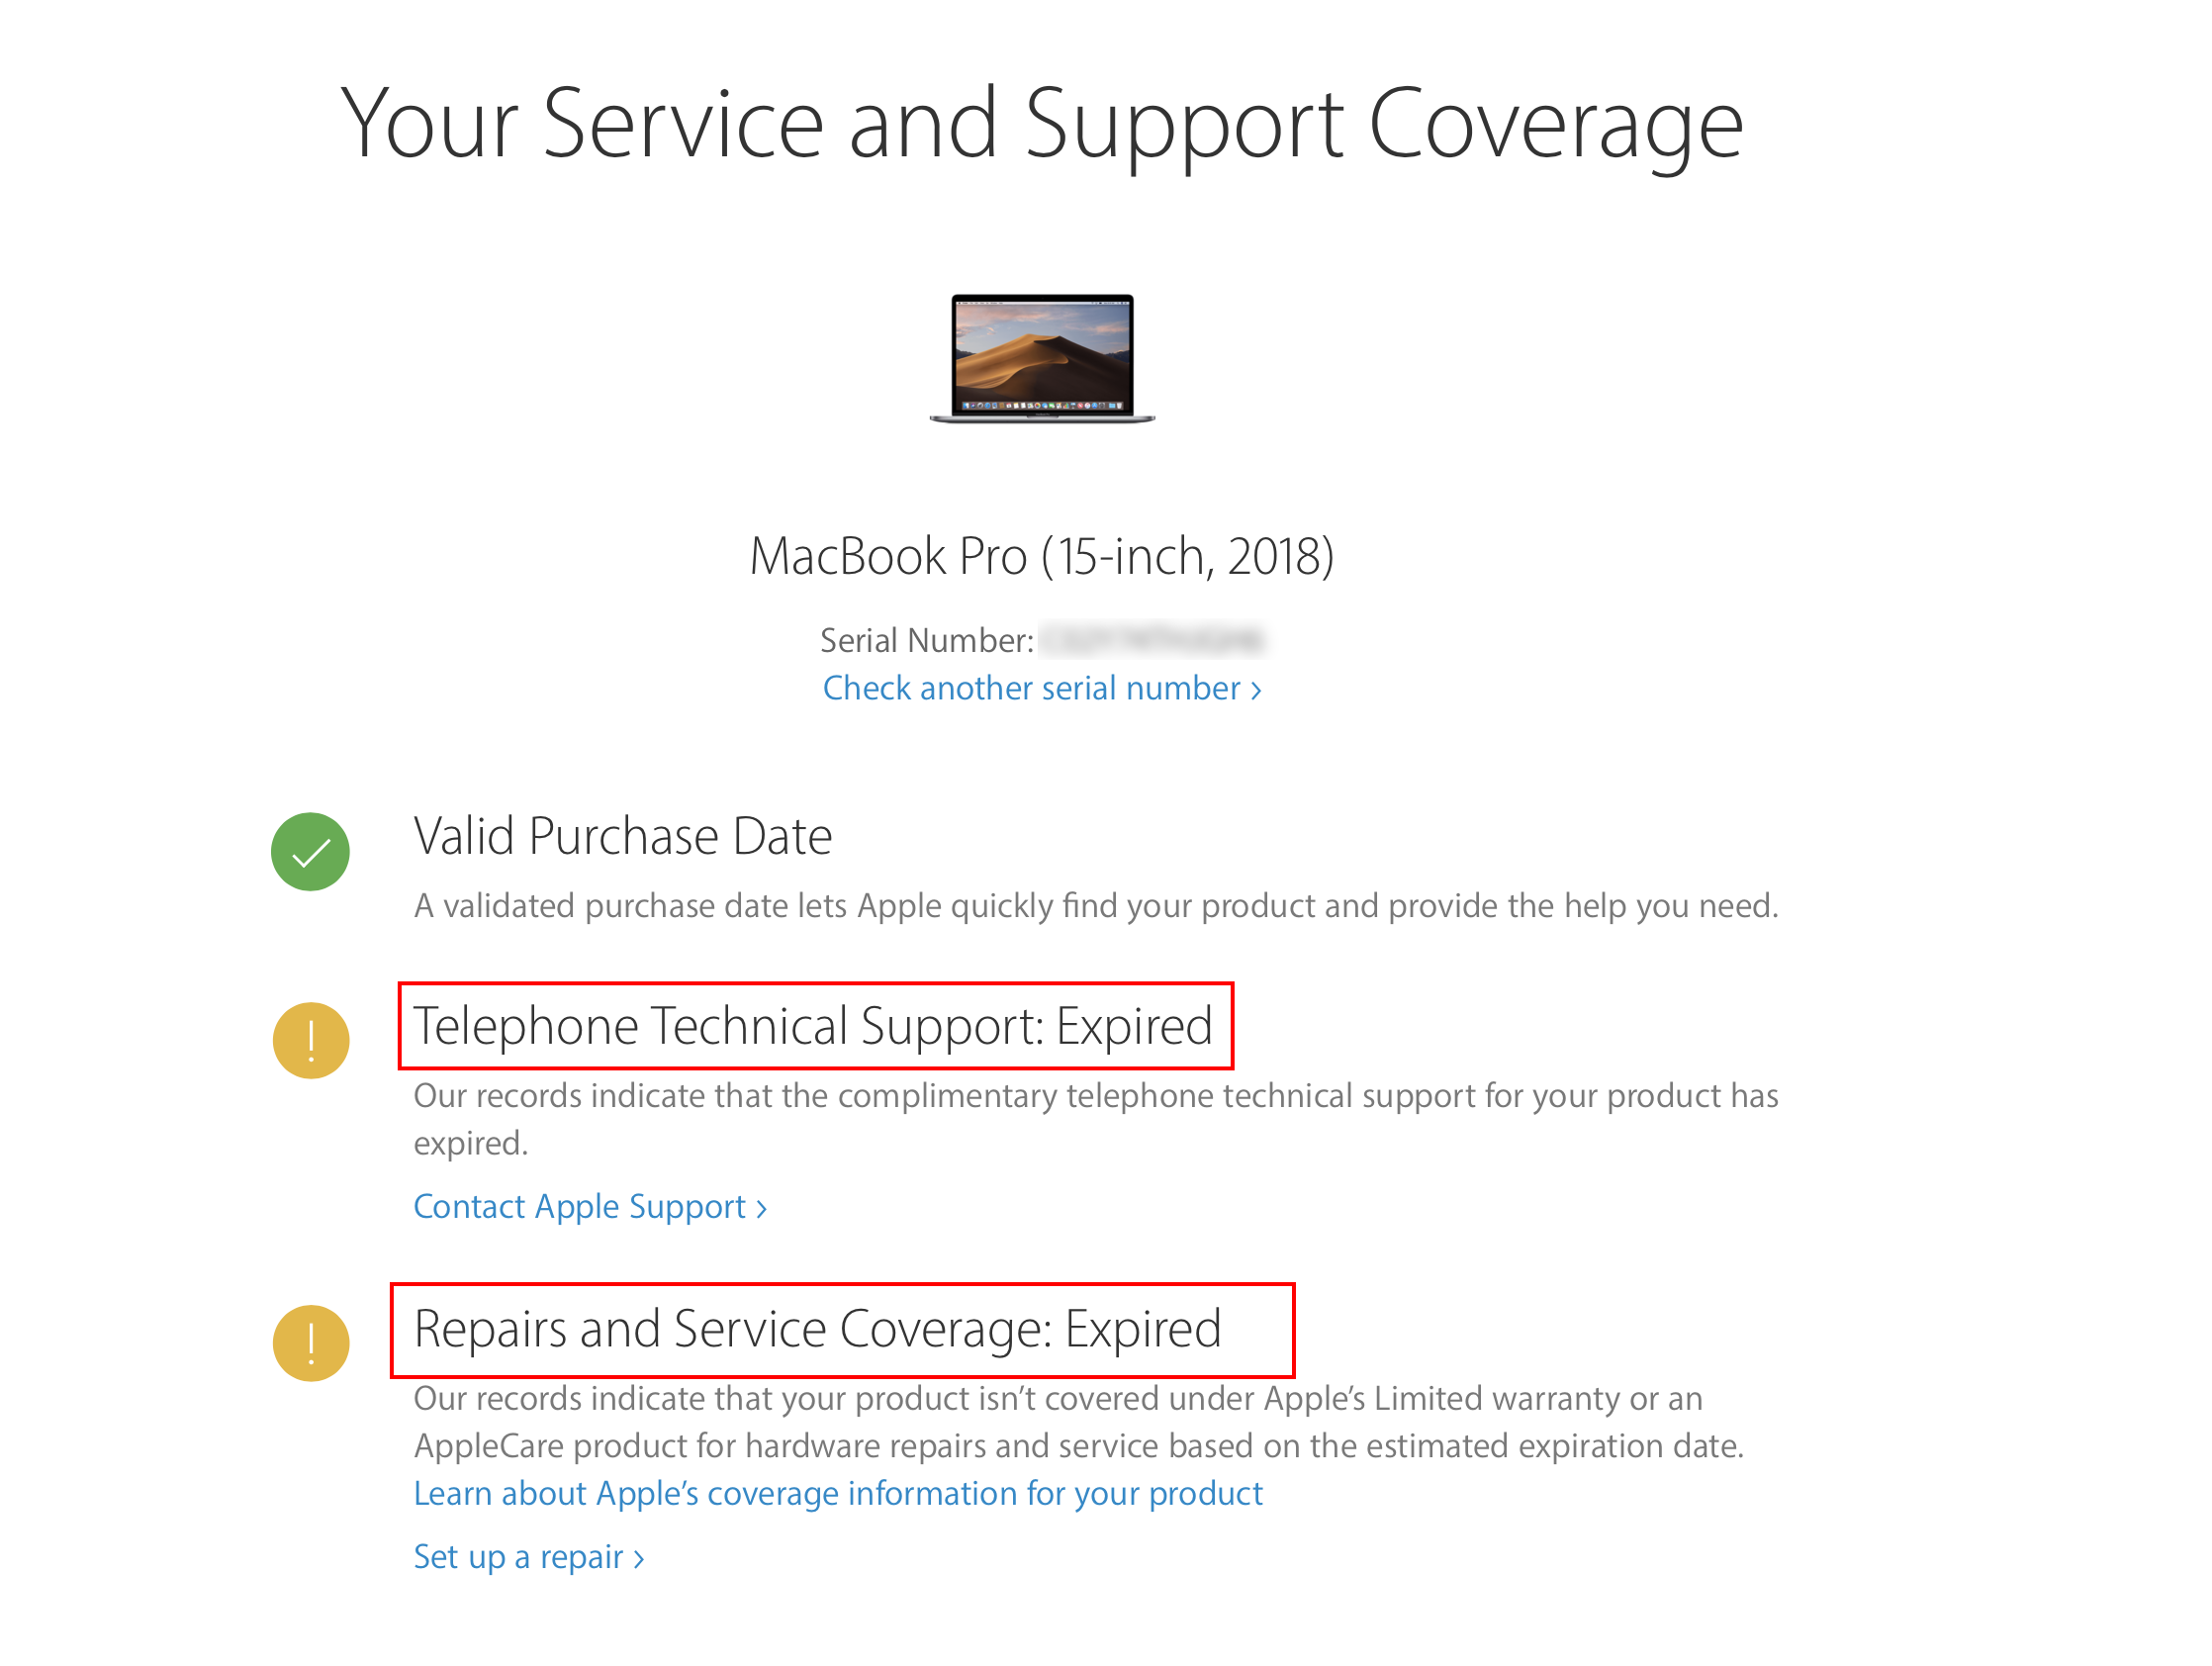 AppleCare for MacBook